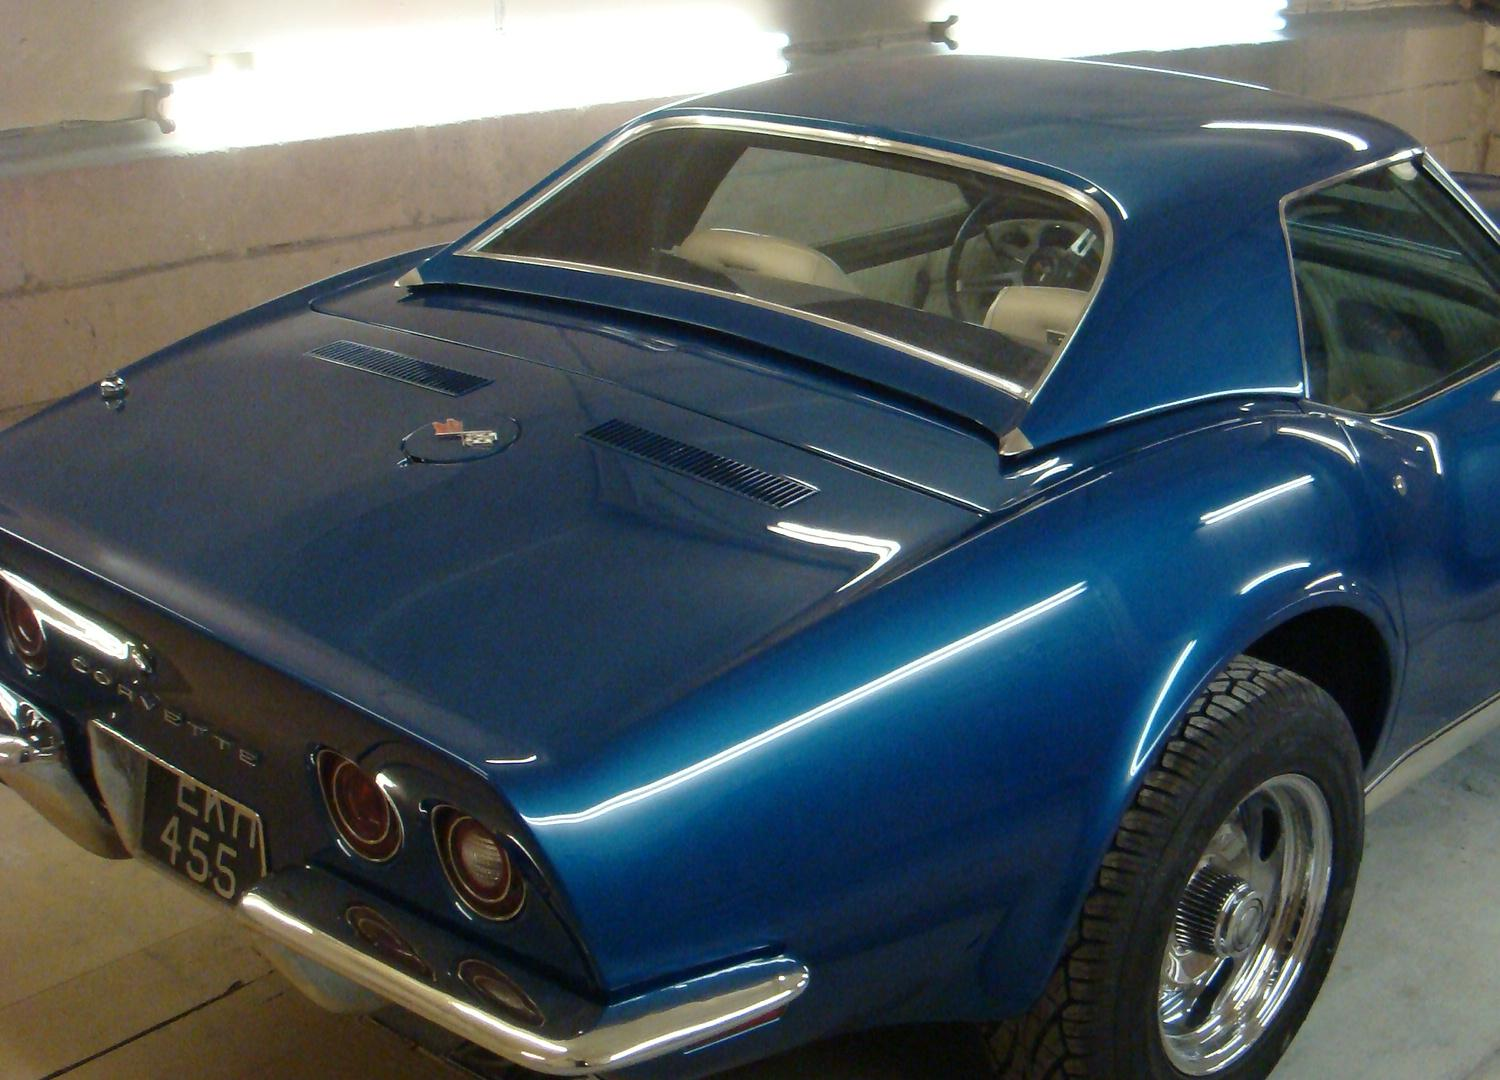 1970 Corvette Stingray | 1970 Corvette | Corvette Stingray | Classic american cars | Classic car restoration | Corvette restoration | APR Bodyworks